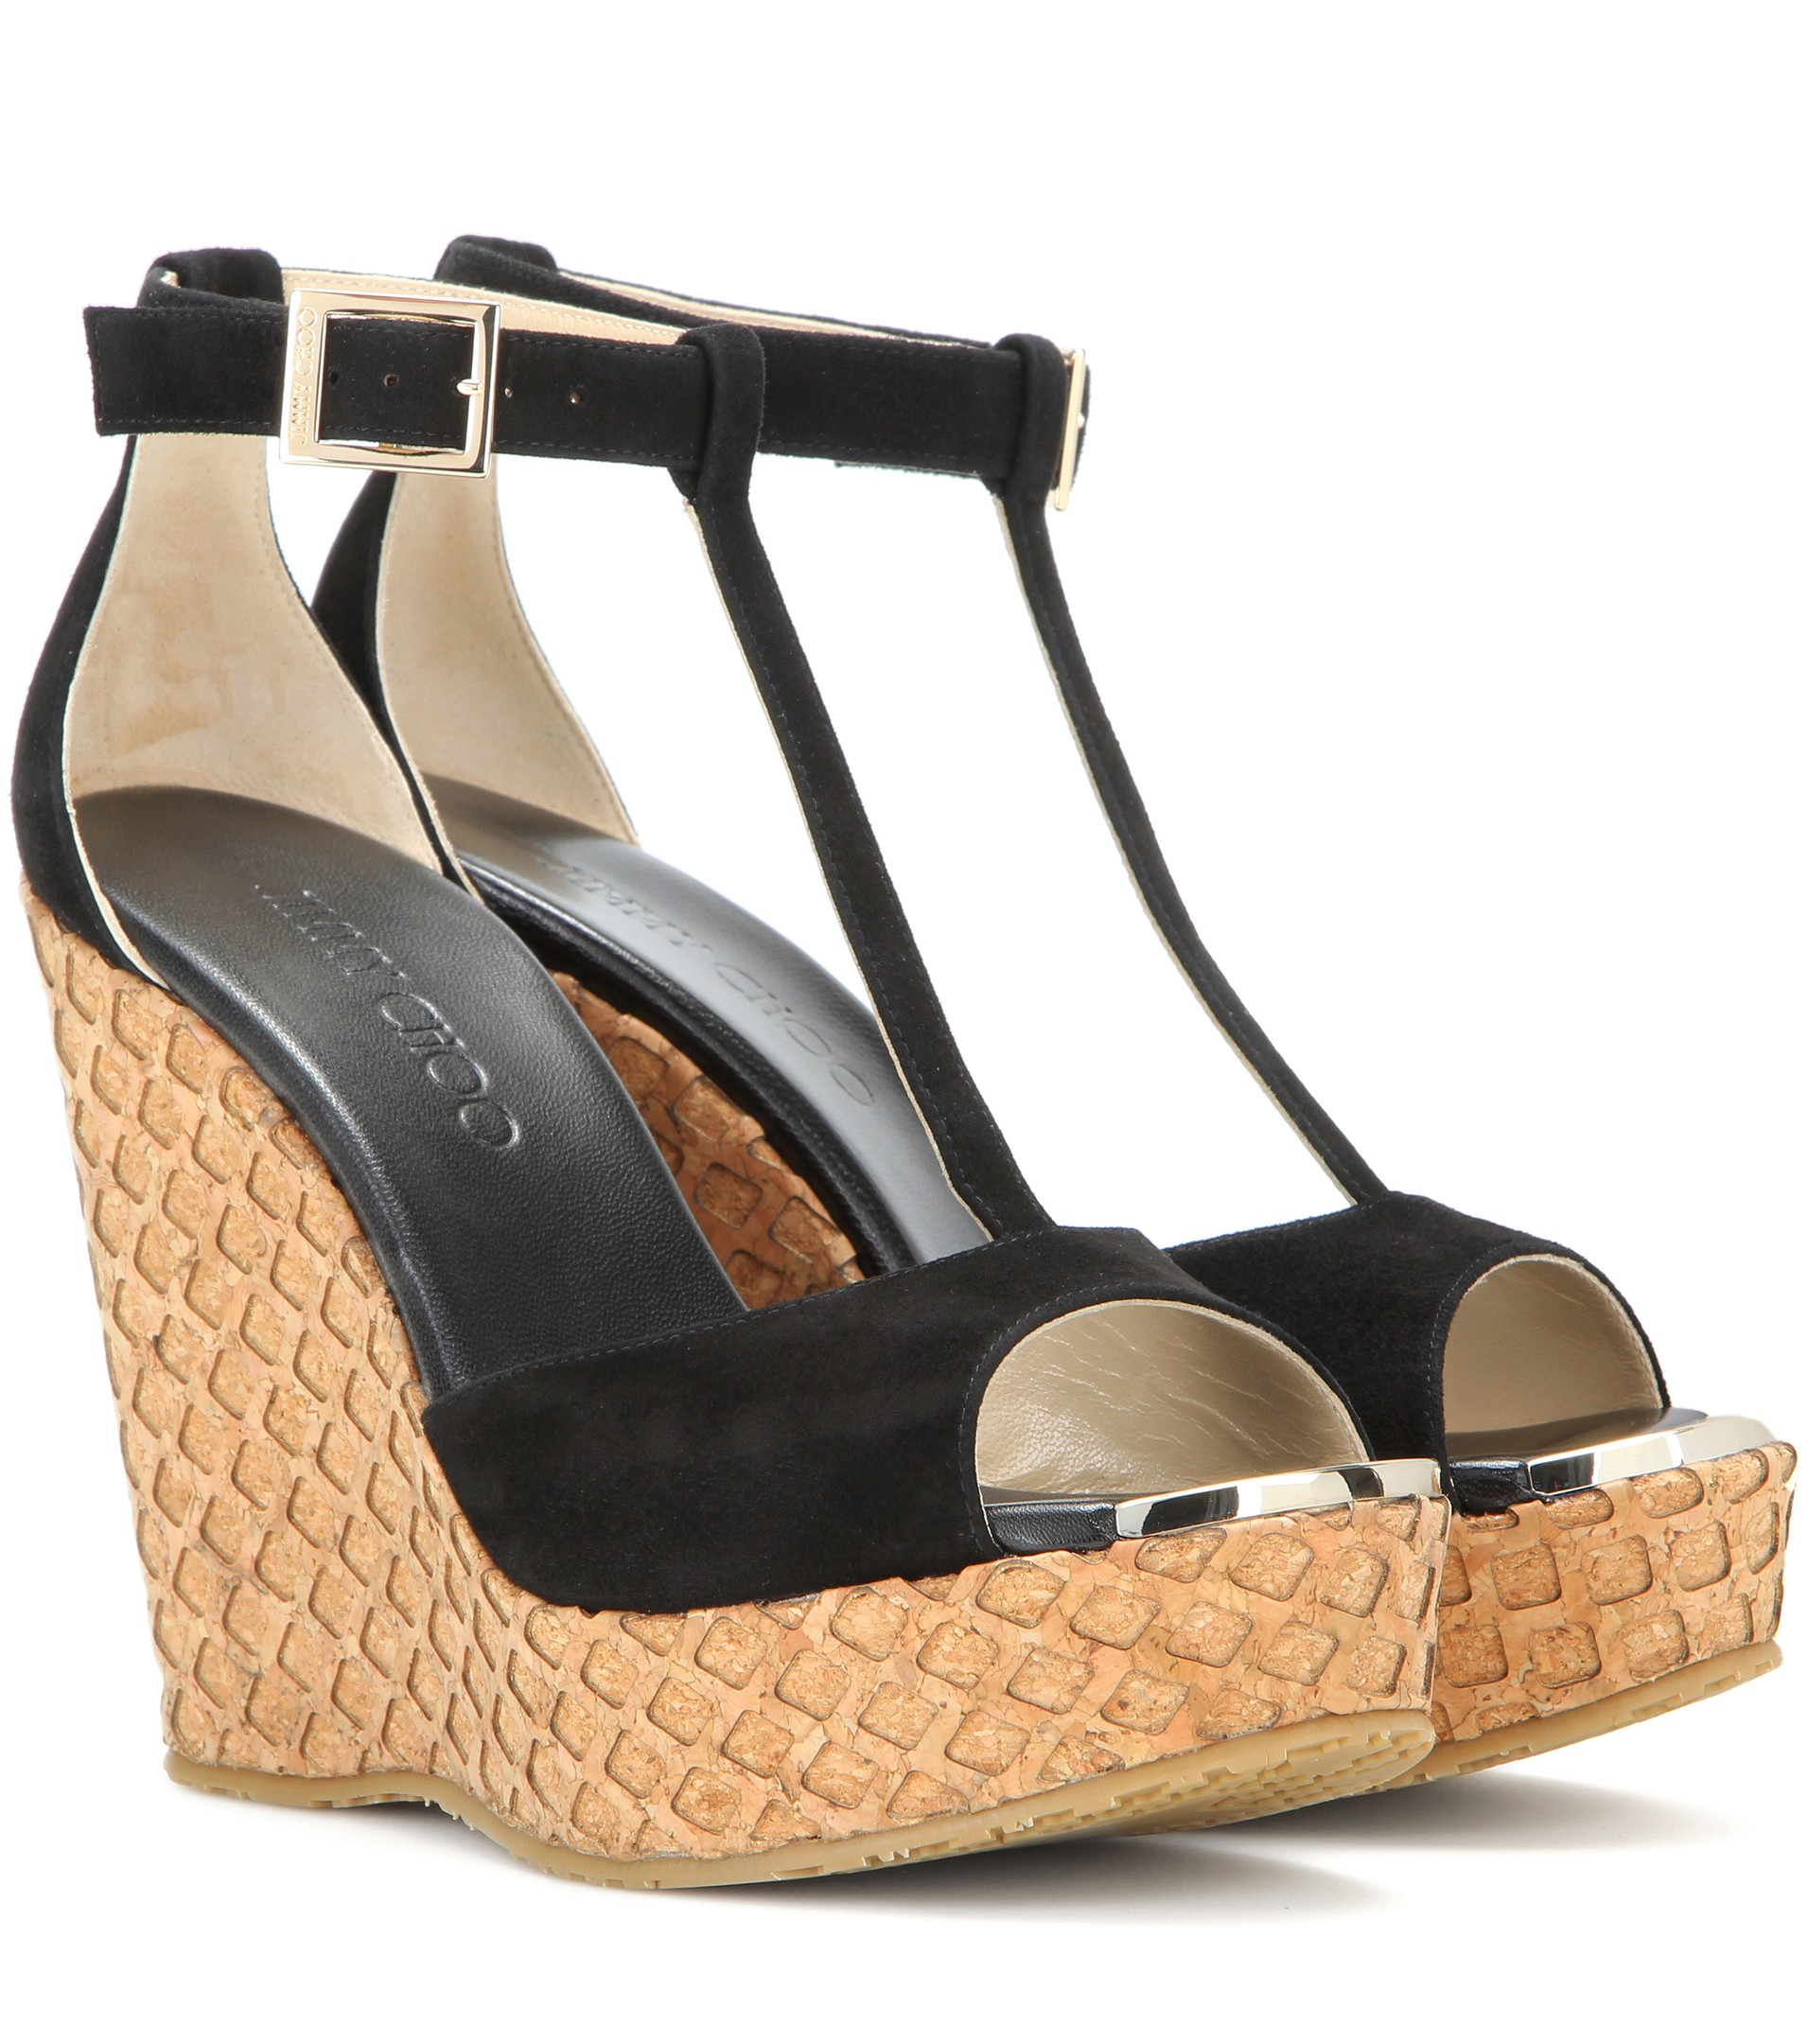 07d9f17a65b61 ... buy lyst jimmy choo portia suede wedge sandals in black 23284 fb9a9